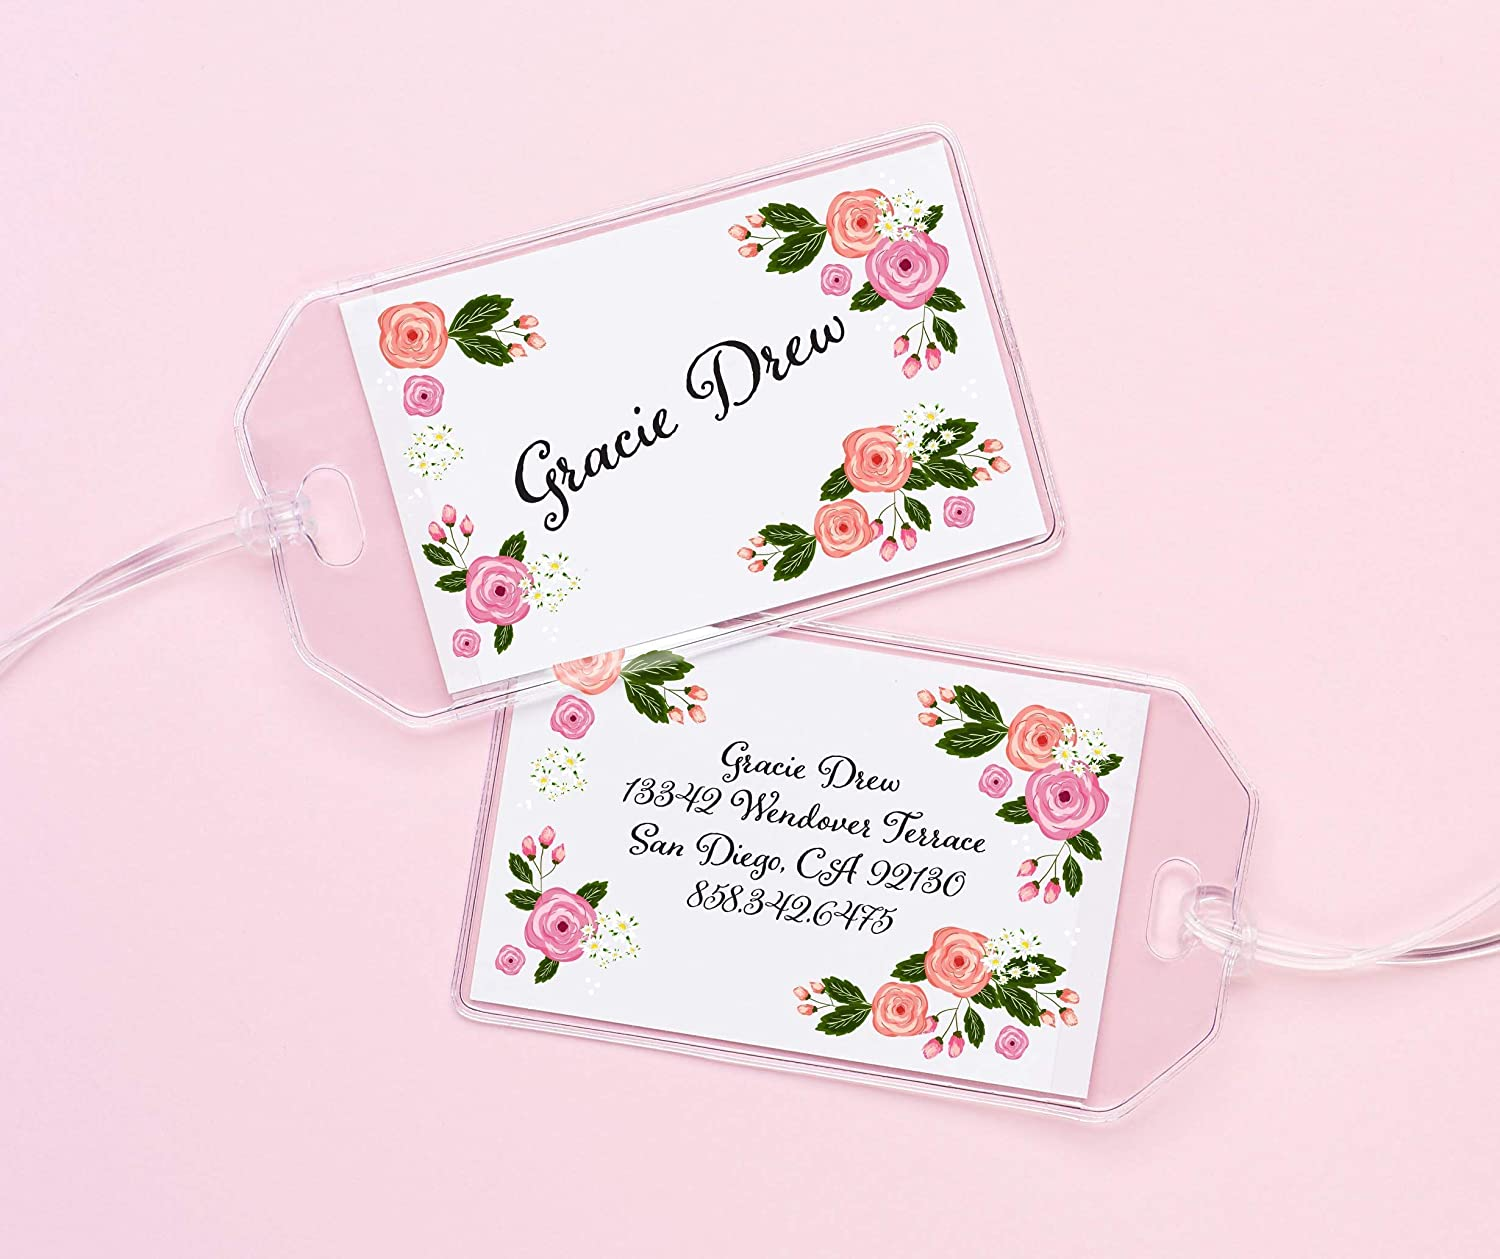 Personalized Clearance SALE! Limited time! Today's only Floral ID Tags for T Flowers Kids Custom Backpacks